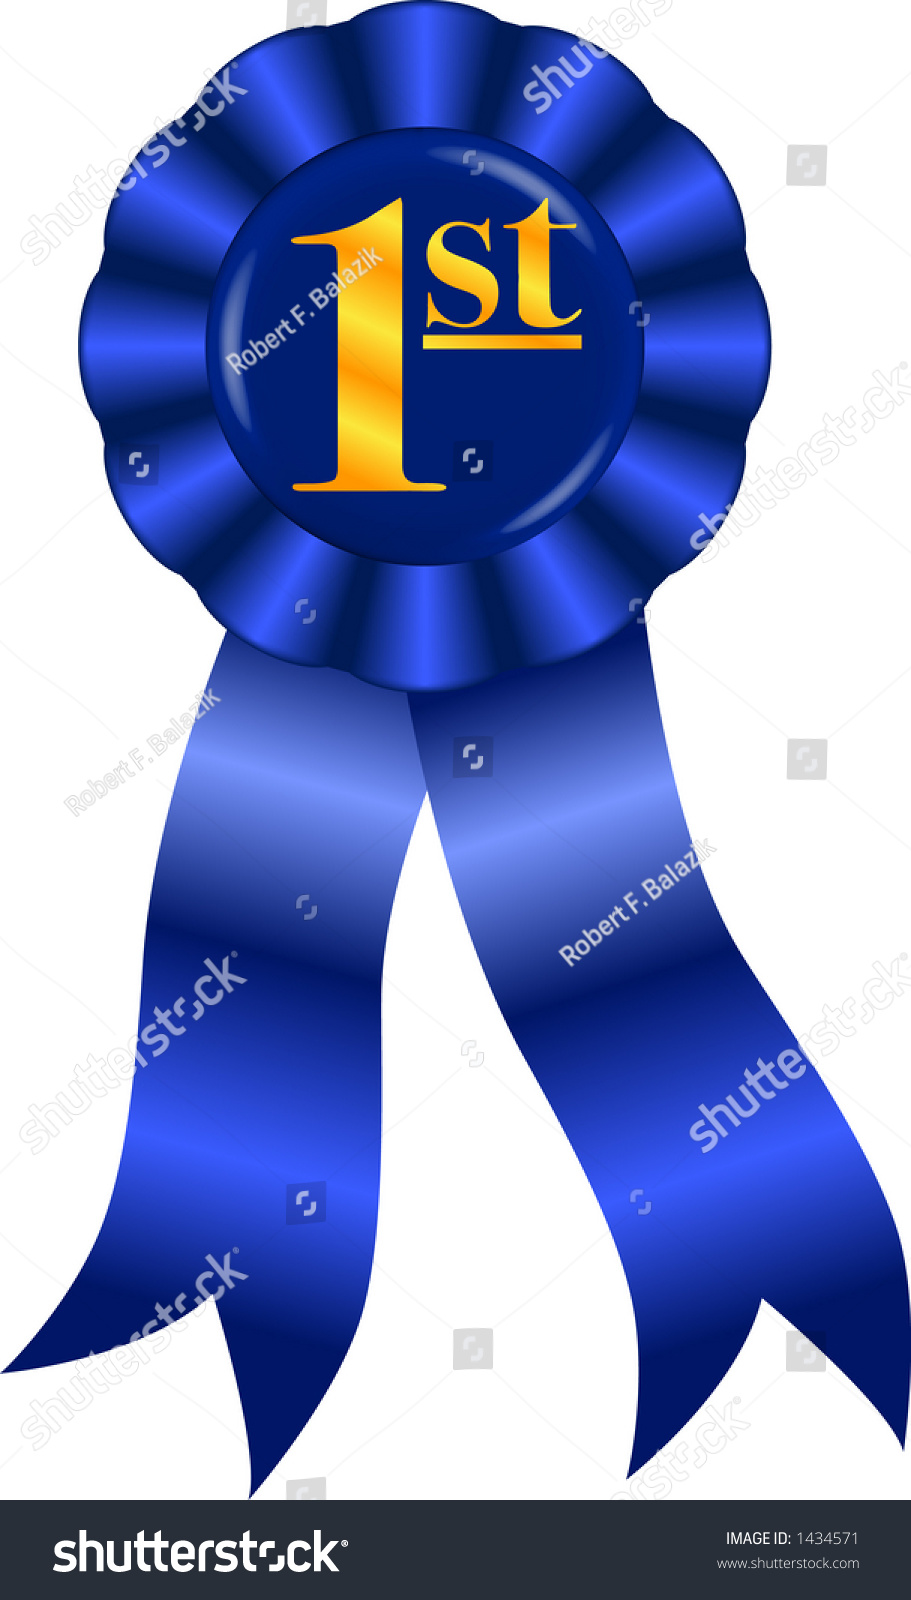 vector graphic depicting blue ribbon award stock vector 1434571 rh shutterstock com first place ribbons clipart first place winner ribbon clip art